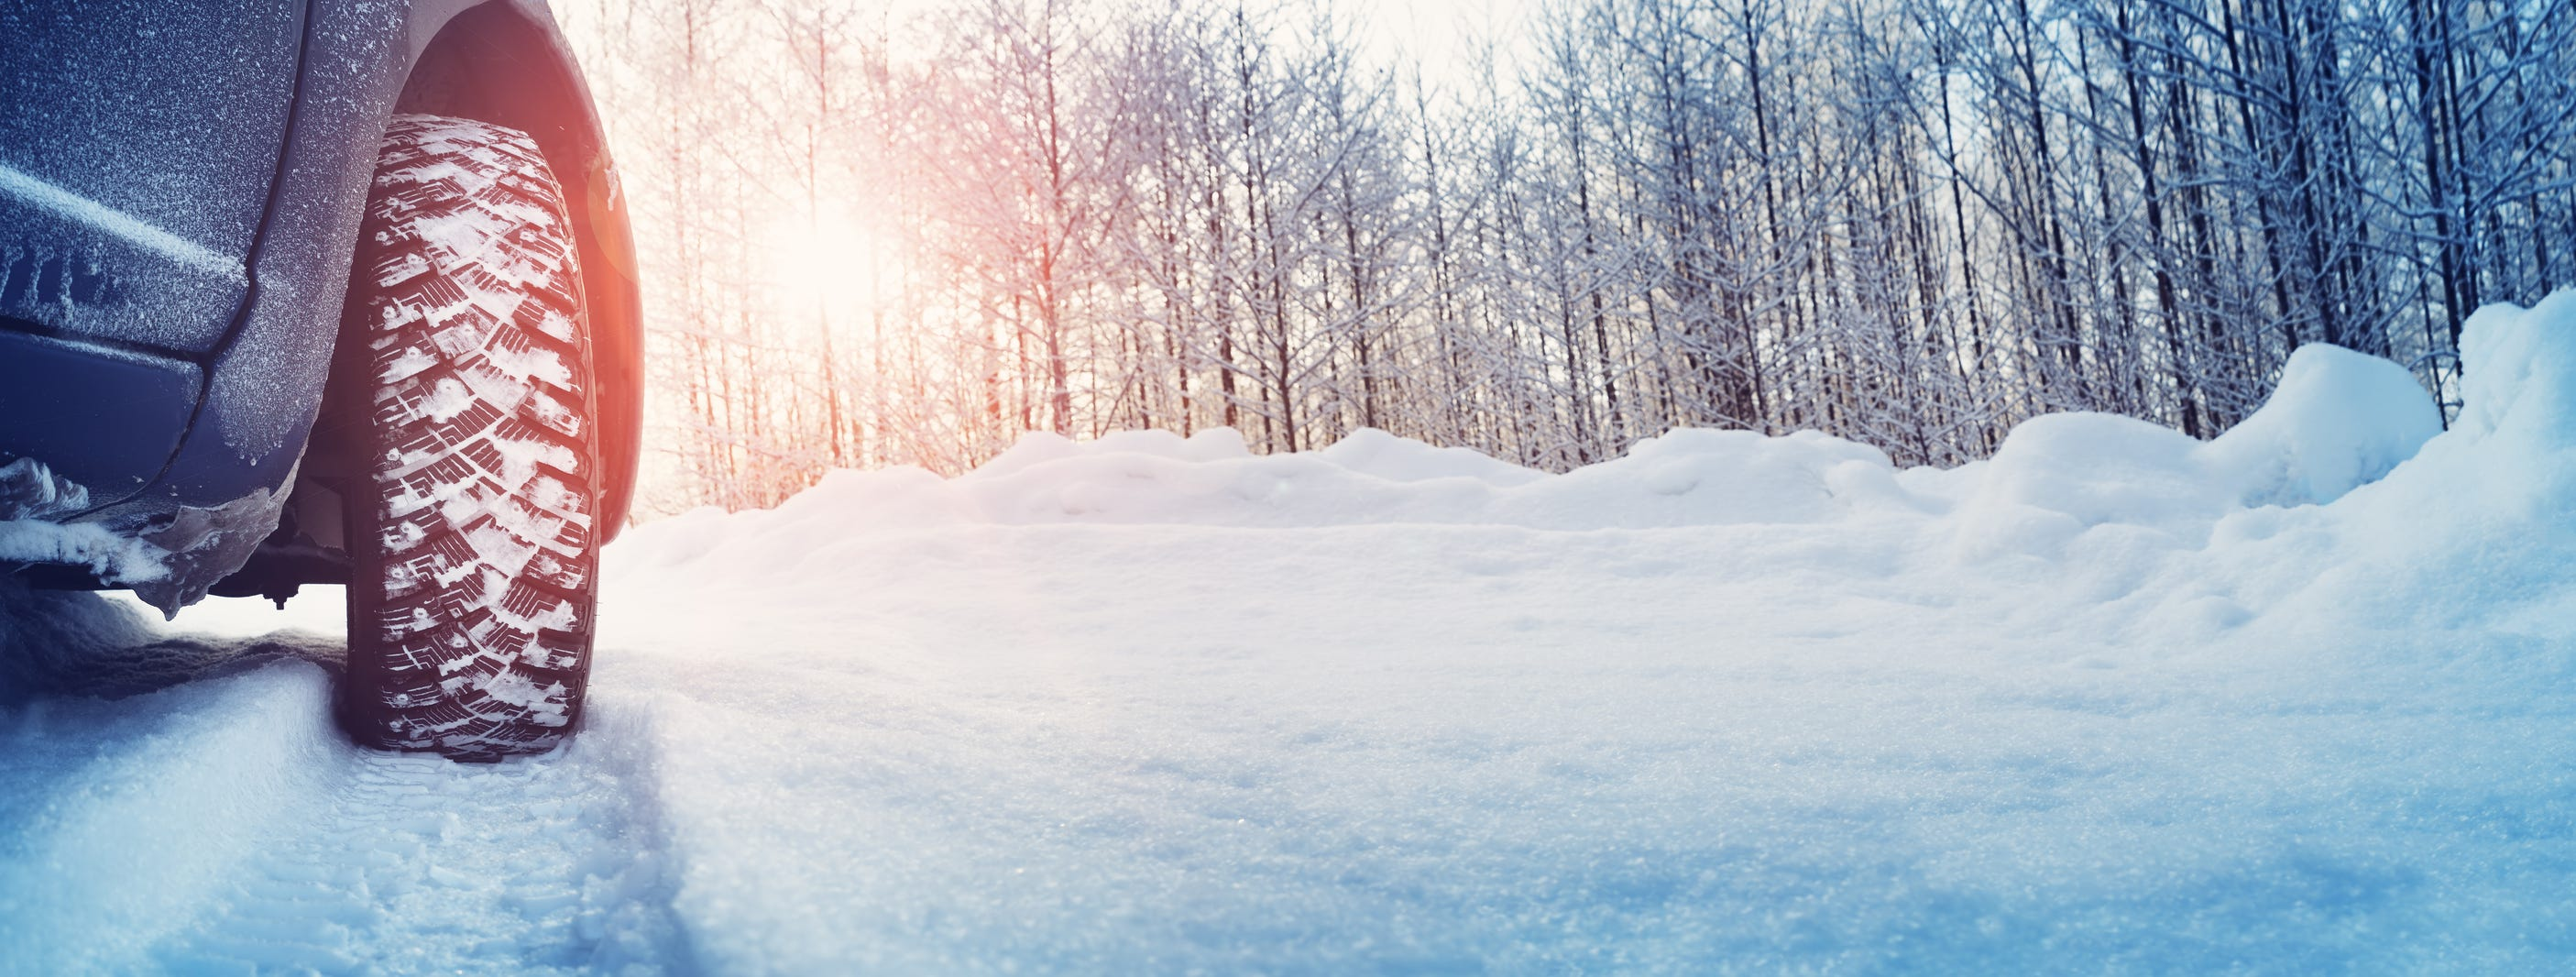 Taking a road trip this winter? Don't drive off until you go through this checklist